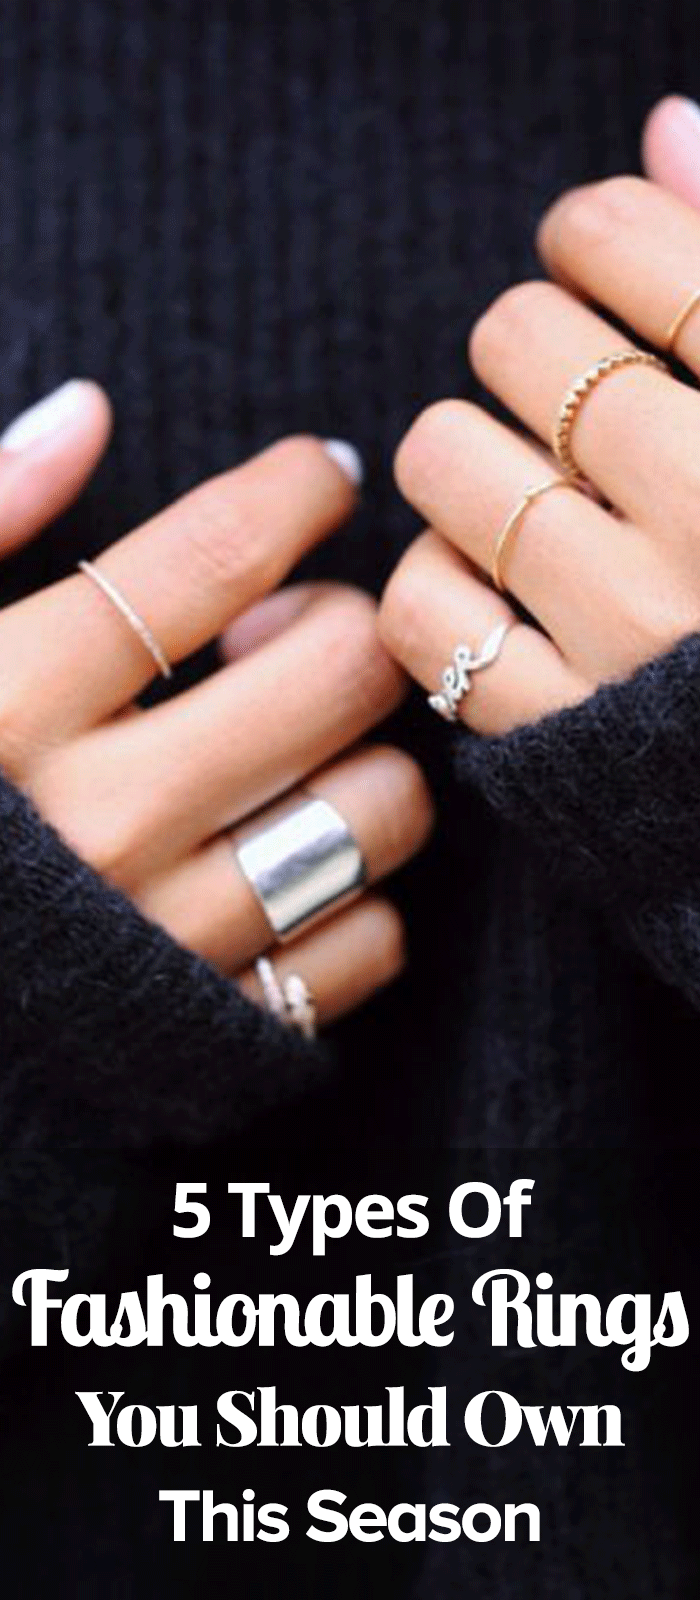 5 Types Of Fashionable Rings You Should Own This Season